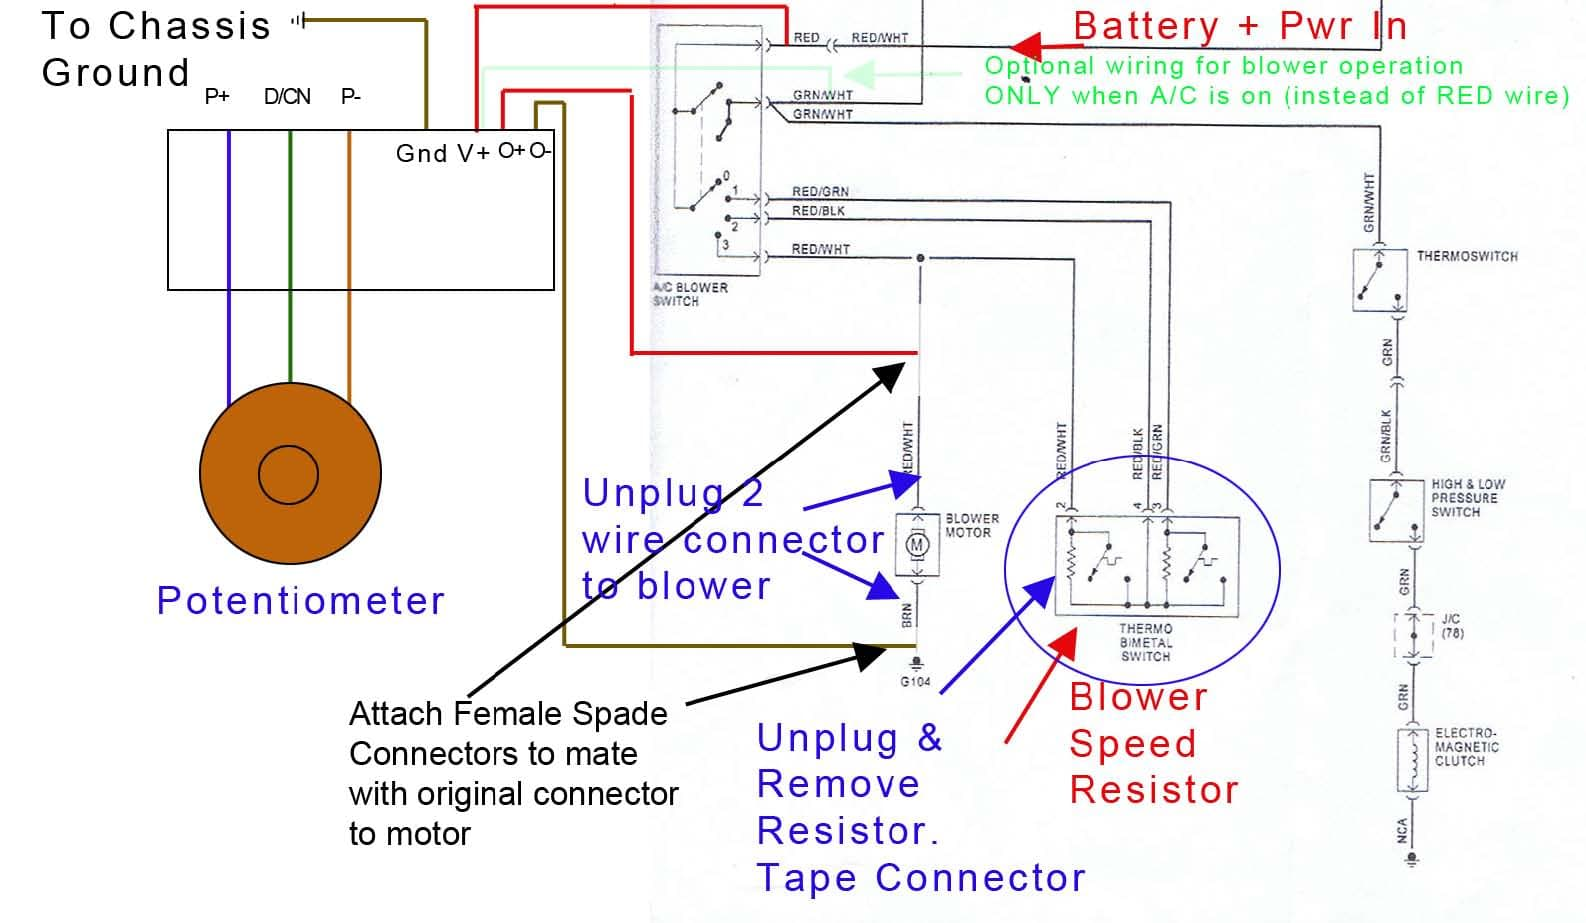 hight resolution of ac fan to potentiometer wiring wiring imagesac fan to potentiometer wiring